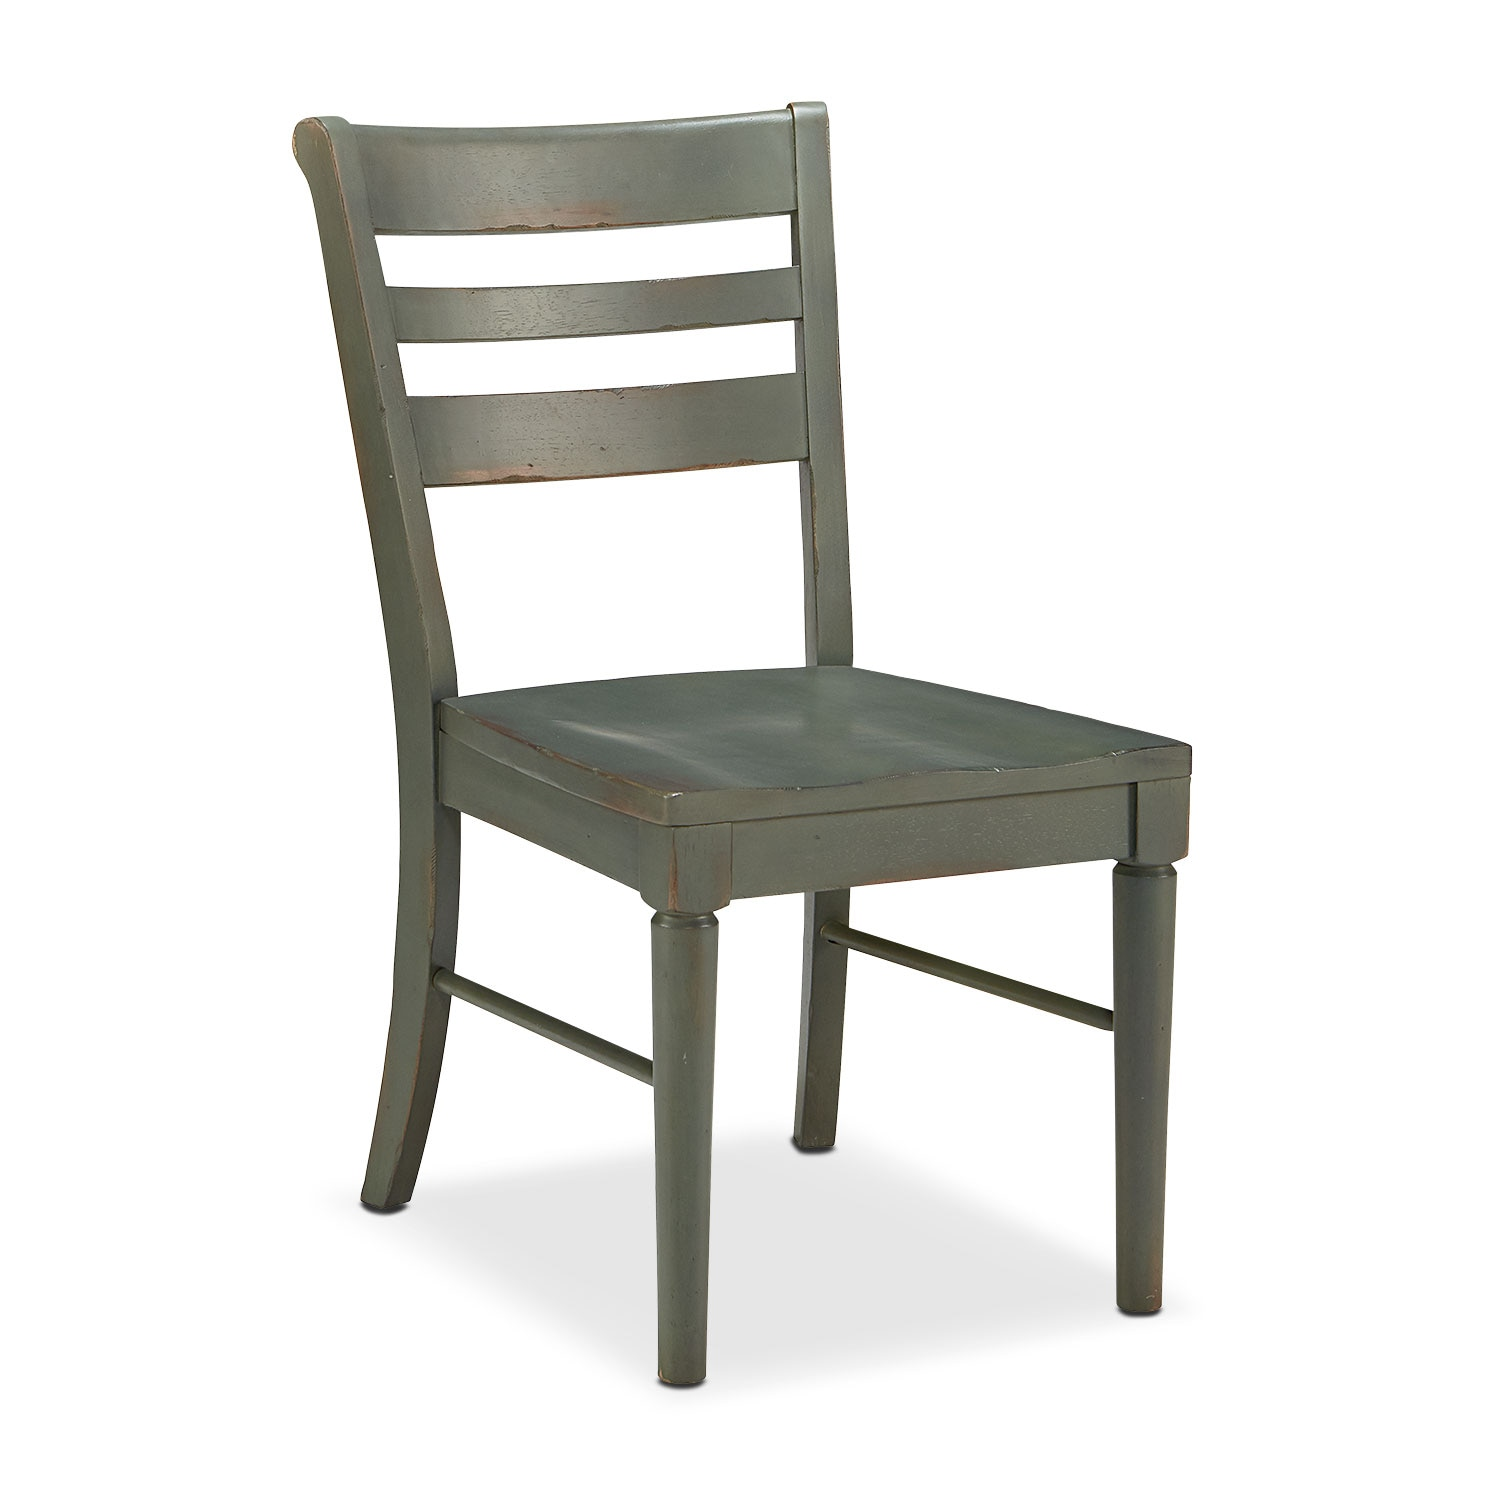 Set of 2 Kempton Slat Back Chairs - Patina